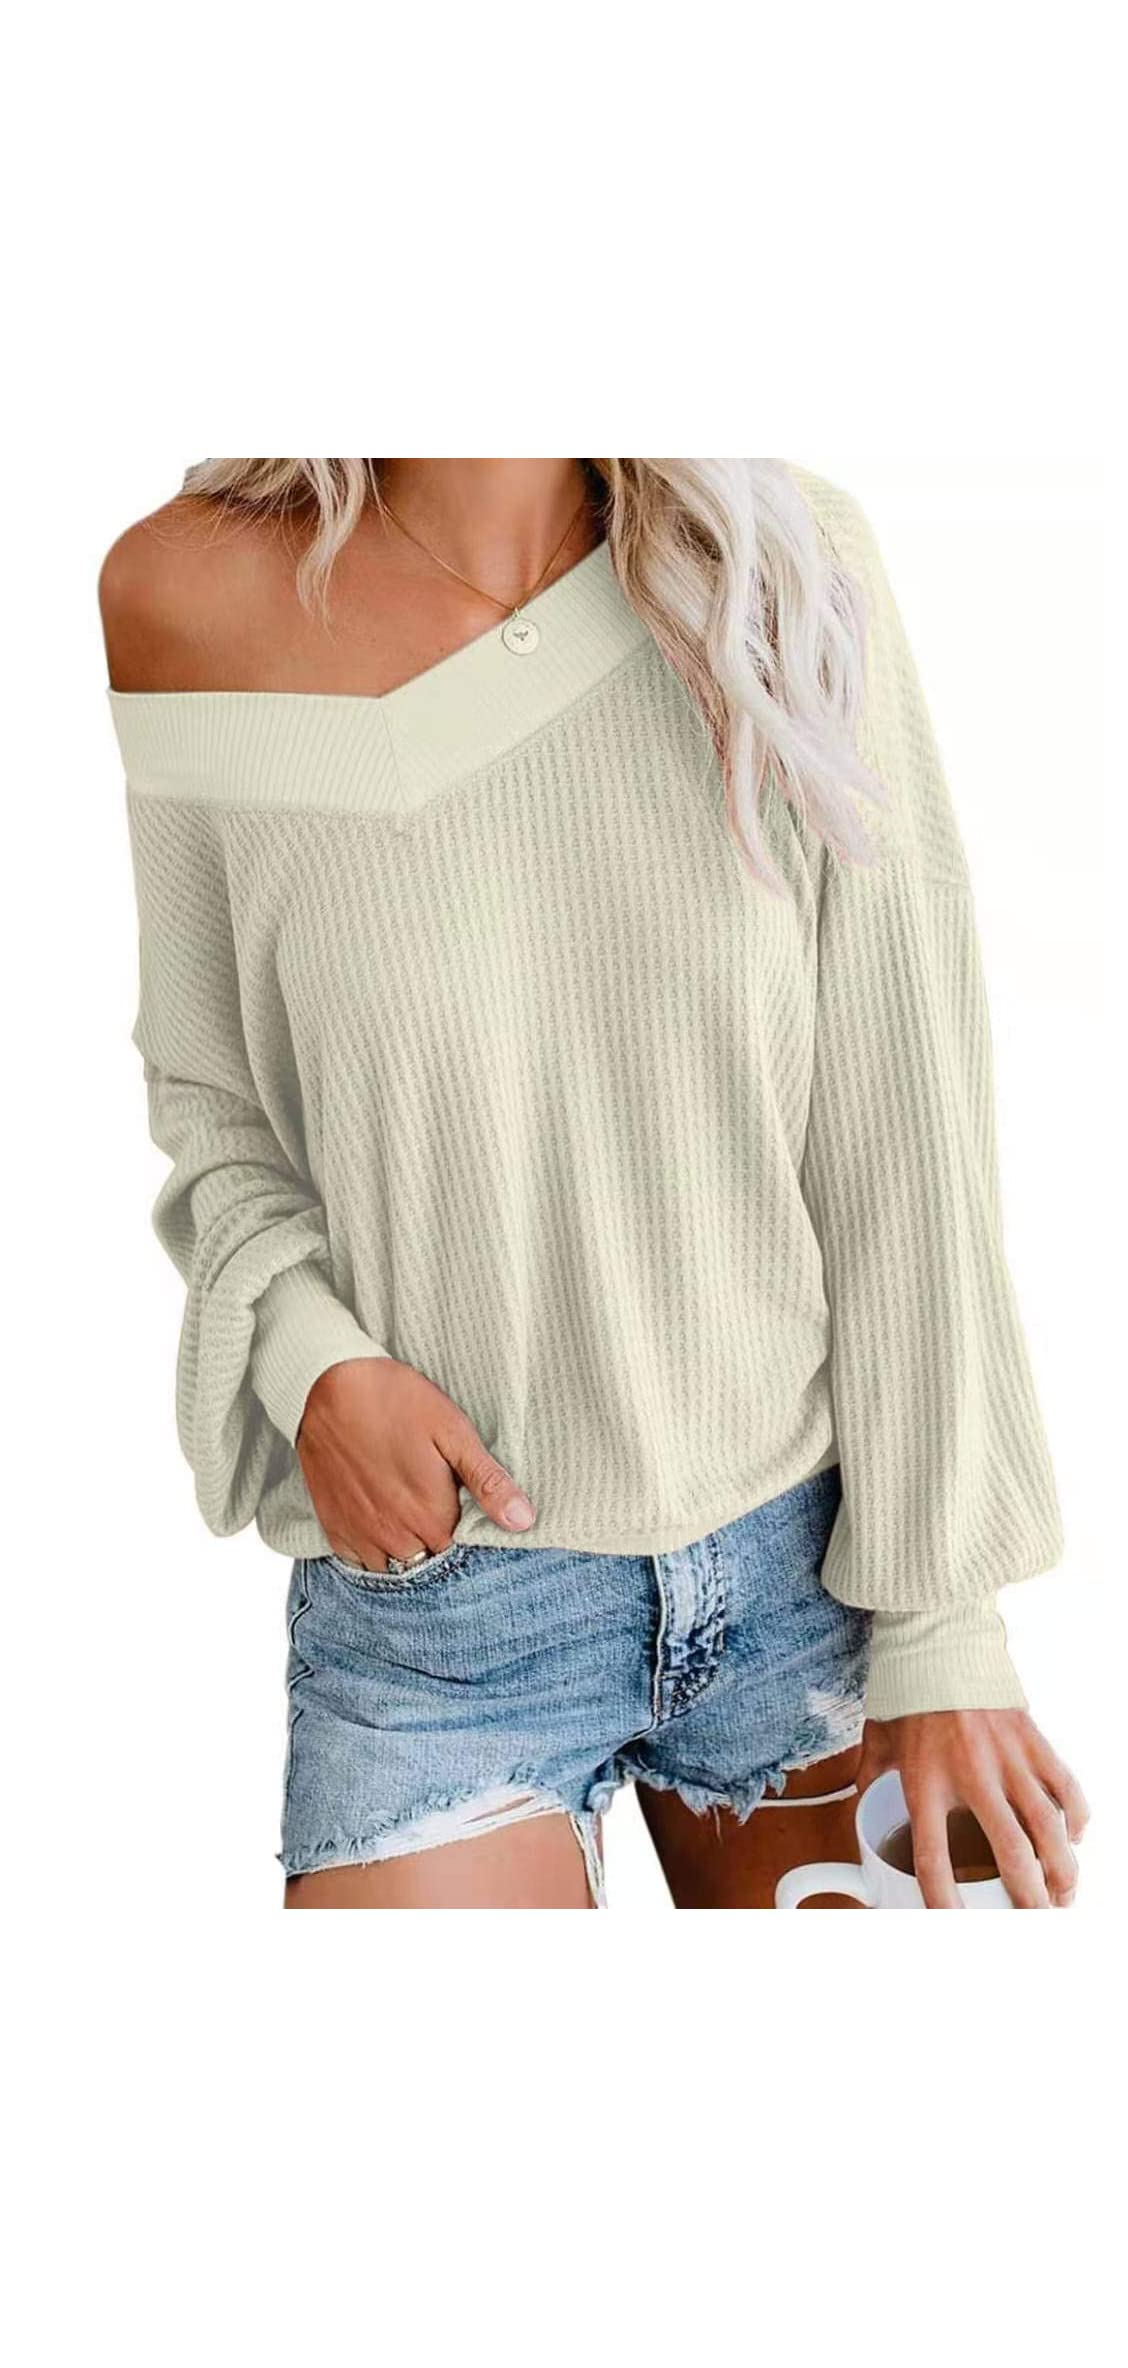 Womens V Nack Off The Shoulder Sweaters Fall Winter